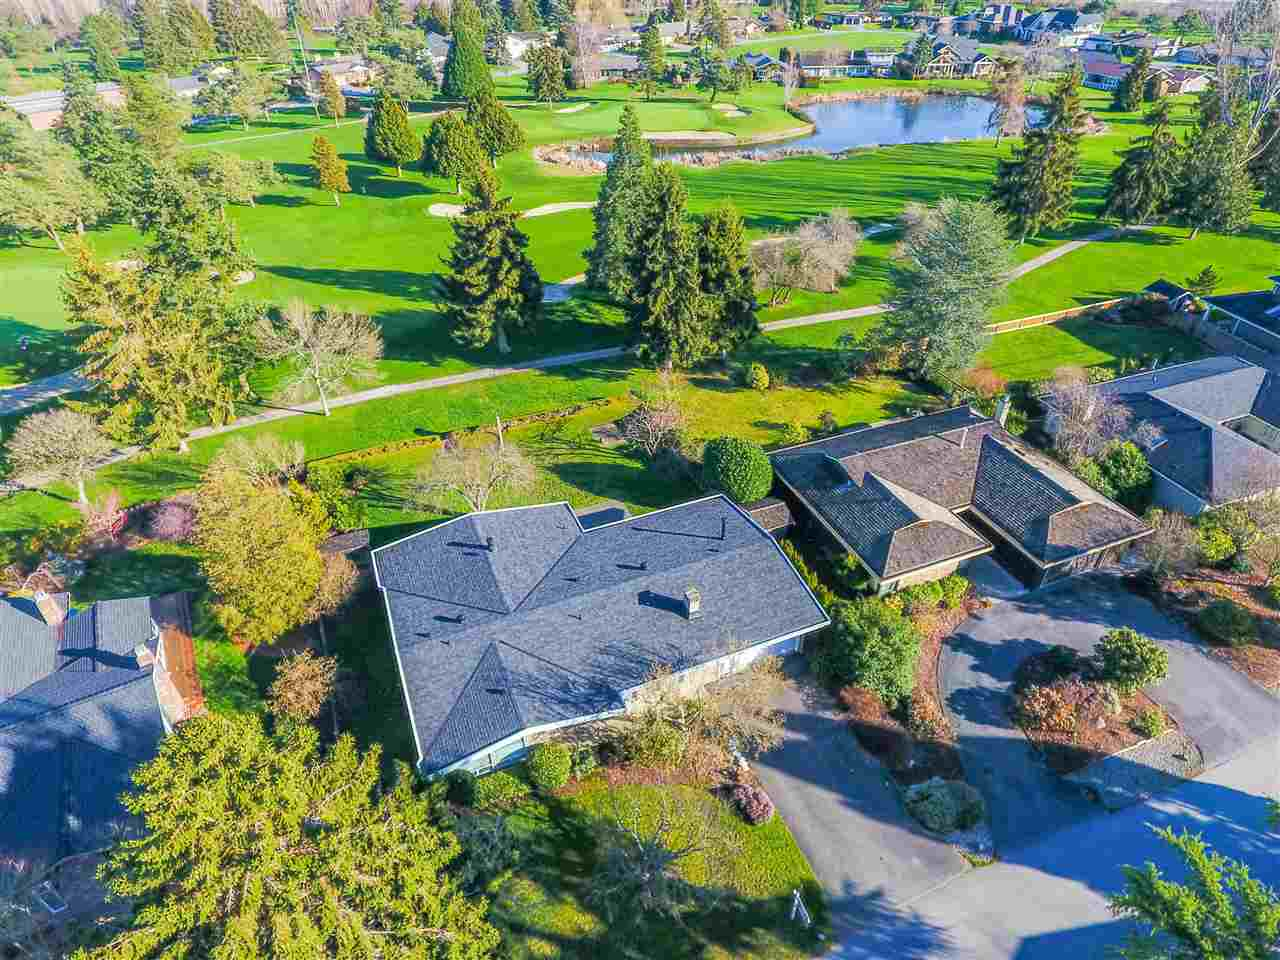 Stunning opportunity to own a large 10,344 sq.ft lot (85' x 122') on one of Tsawwassen's most exclusive and desired streets! Backing on to Tsawwassen's prestigious Beach Grove Golf Course, this prime property offers unbeatable fairway views and features  a well-cared for 3 bedroom, executive rancher offering nearly 2,025 sq.ft. Mid-century inspired architecture with an open concept living room and kitchen make this a great renovation project or option to build over 4,000 sq.ft . Updates include laminate flooring and a new roof in 2015. By private appointment.